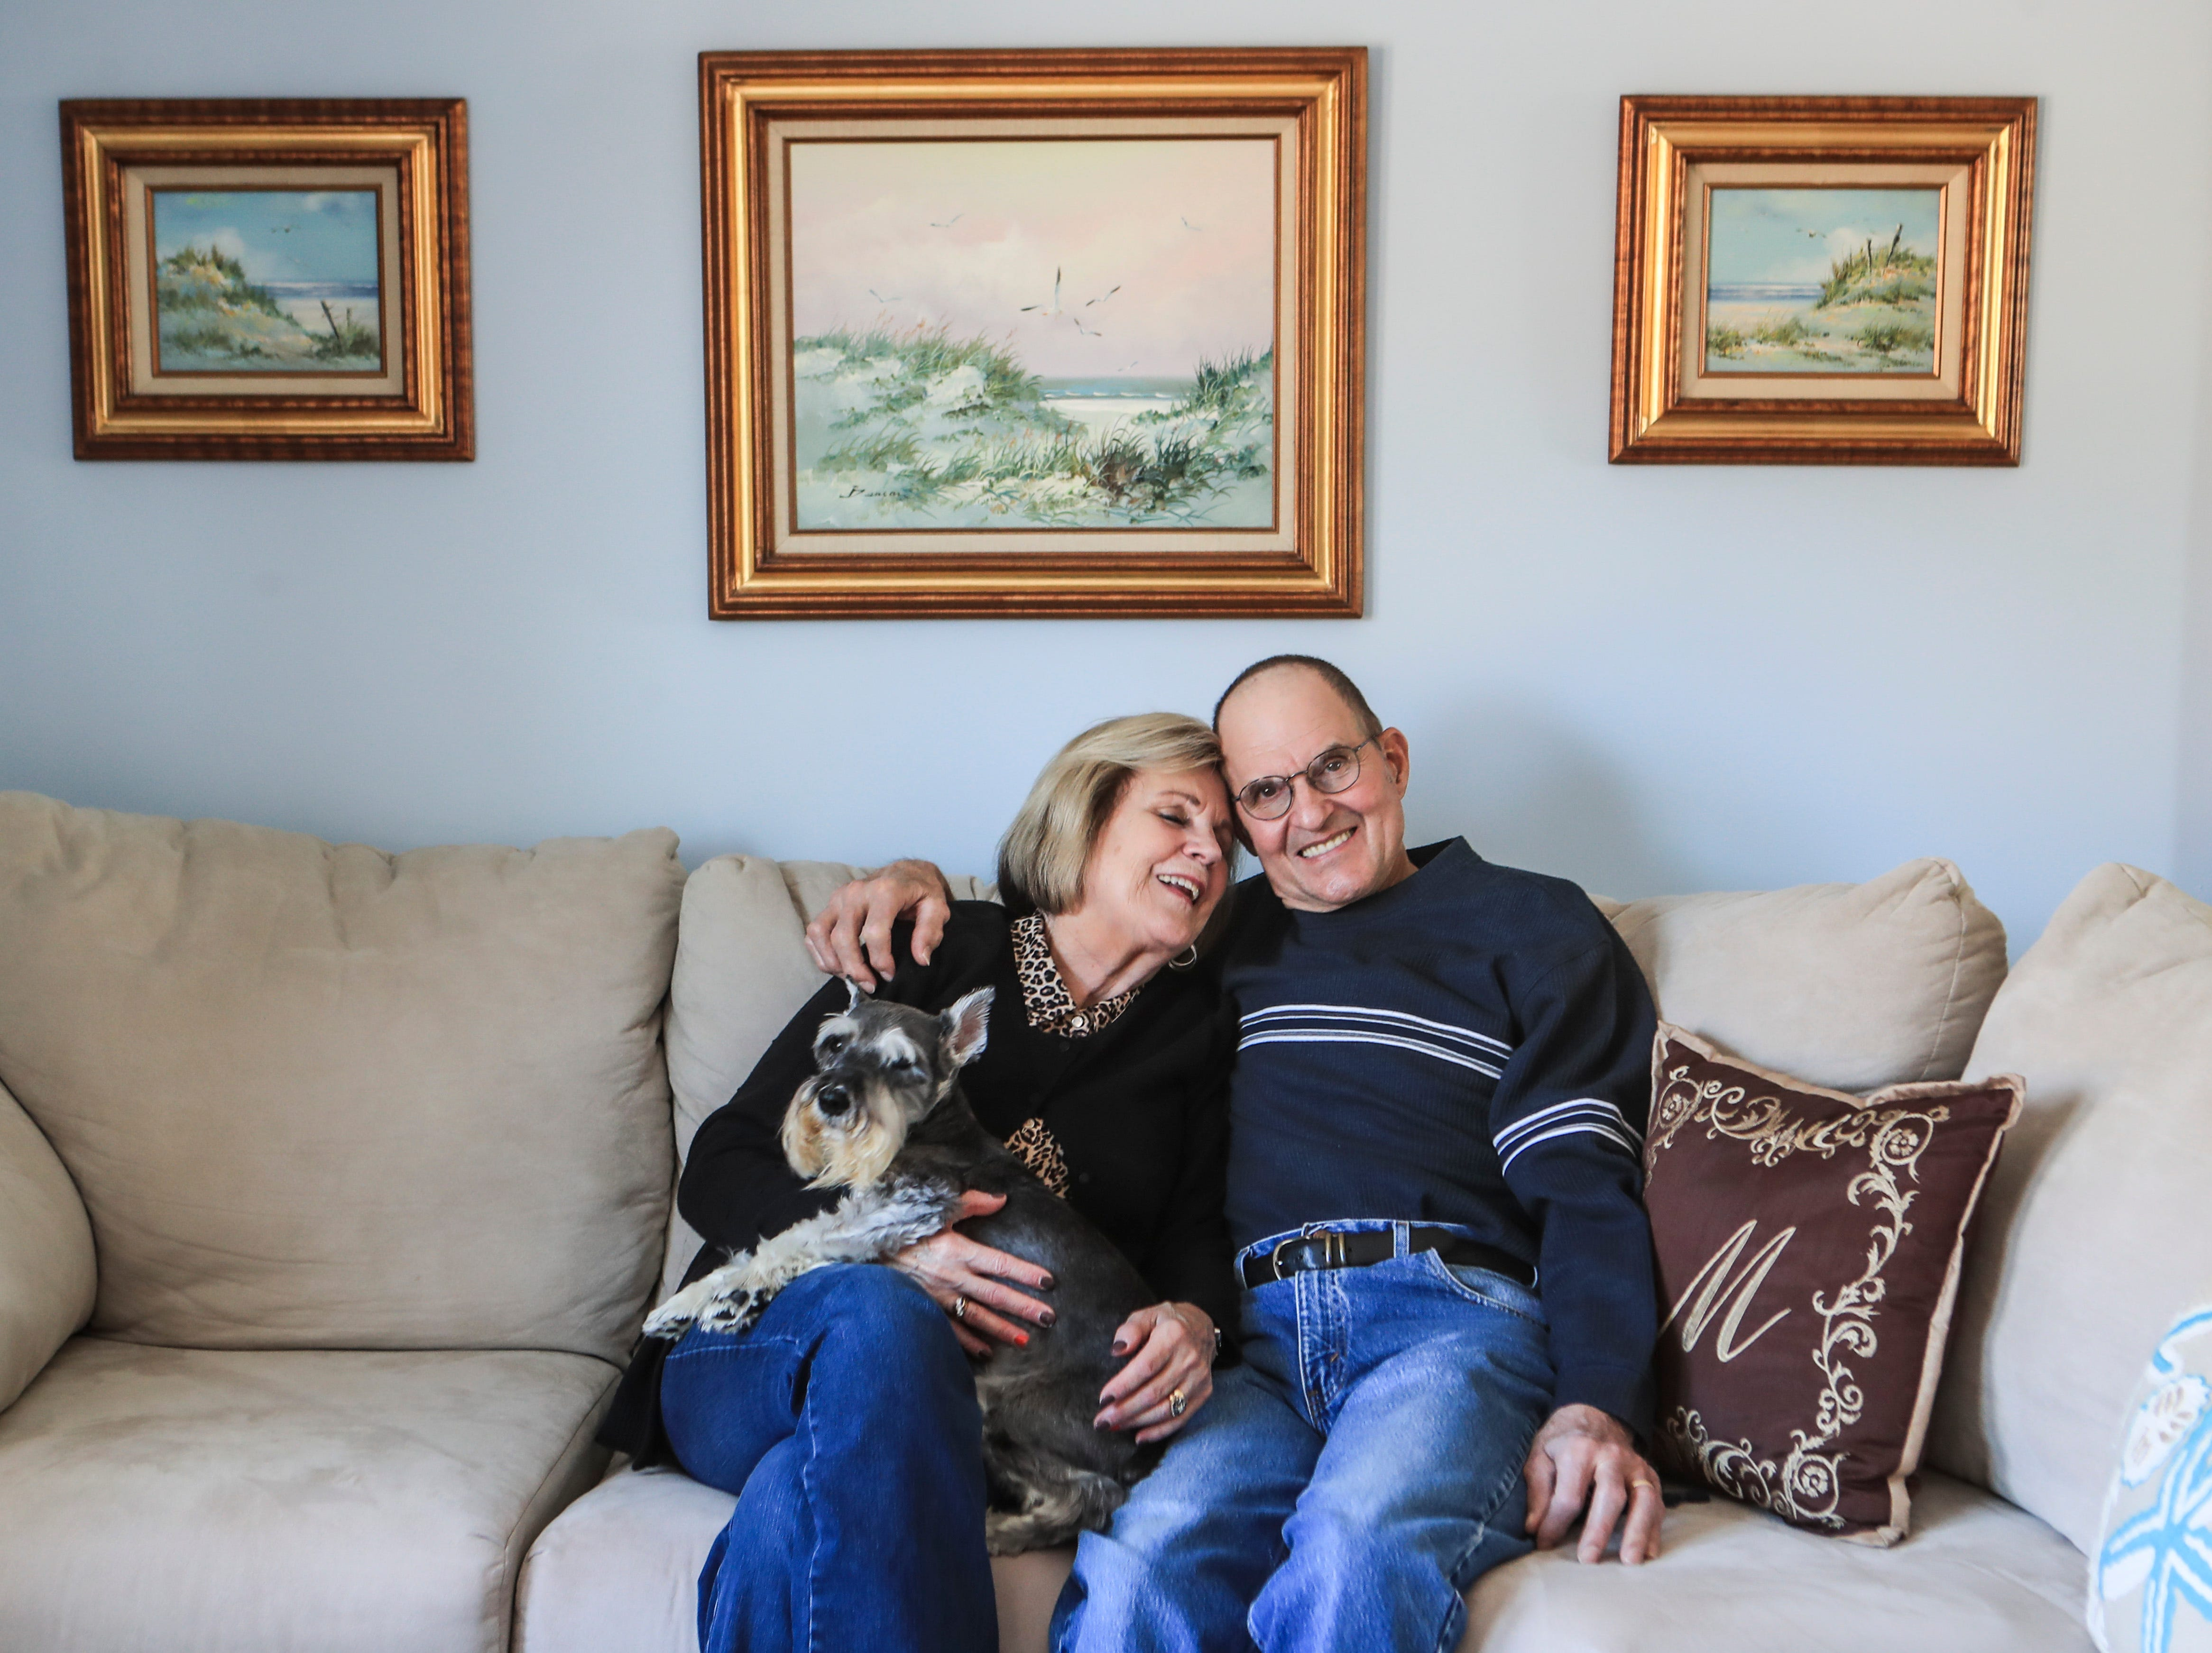 """Pat and Roger Michels have been married for 50 years. She met him through a letter while Roger was stationed in Vietnam in 1970. Roger wrote to her on the urging of an Army buddy. She wasn't looking for love but wrote him back as well to help him while he was in the Vietnam War. """"It wasn't much longer after I sentthat first letter that I started receiving letters and pictures from Roger three or four times a month,"""" Pat said. """"And I started writing back even faster."""" The Milltown, Ind. couple have one adult son who is married and lives in Evansville and a schnauzer named Baxter. Feb. 3, 2021"""